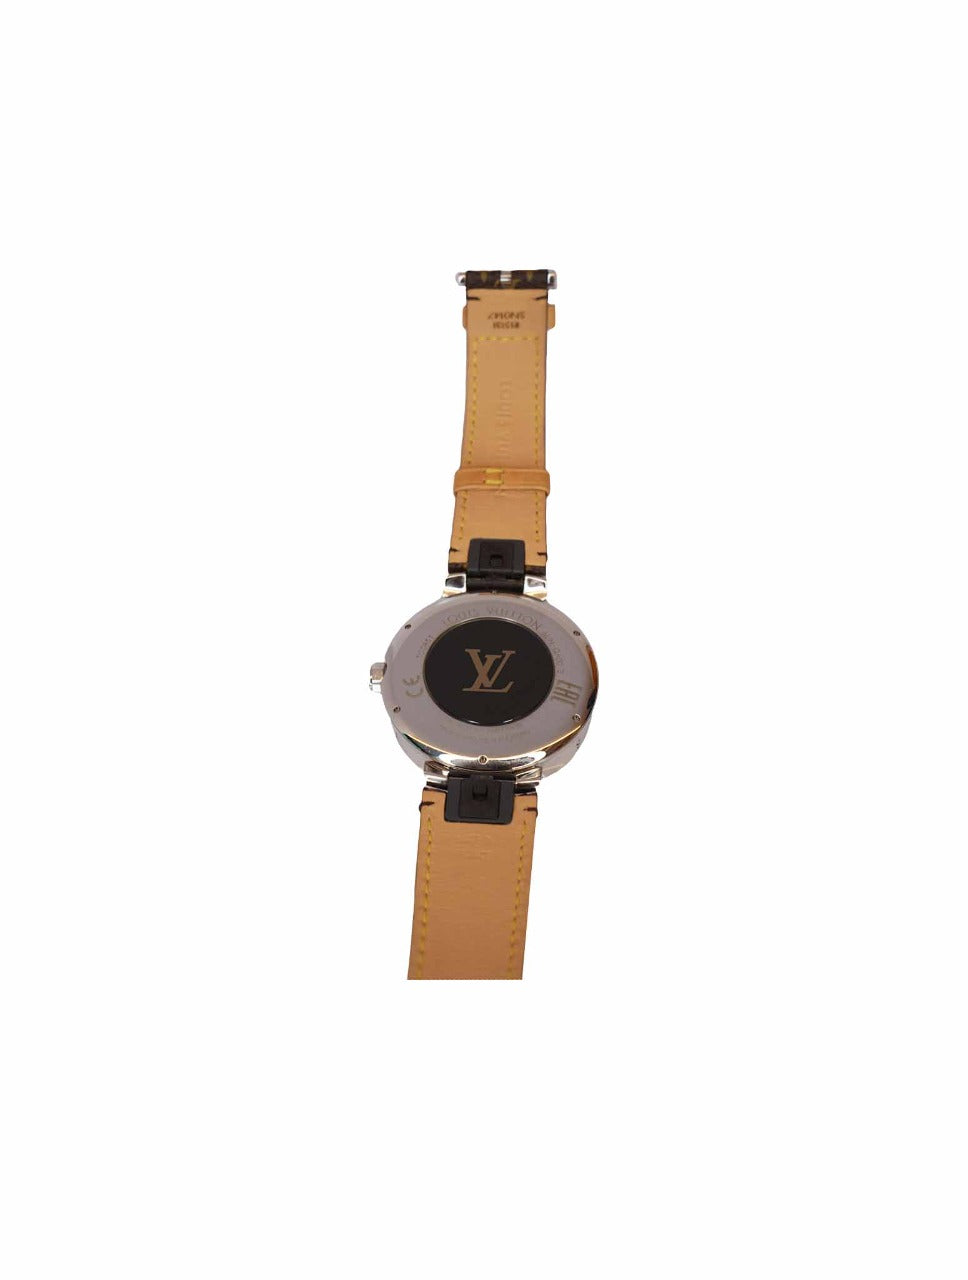 MONOGRAM TAMBOUR HORIZON DIGITAL WATCH